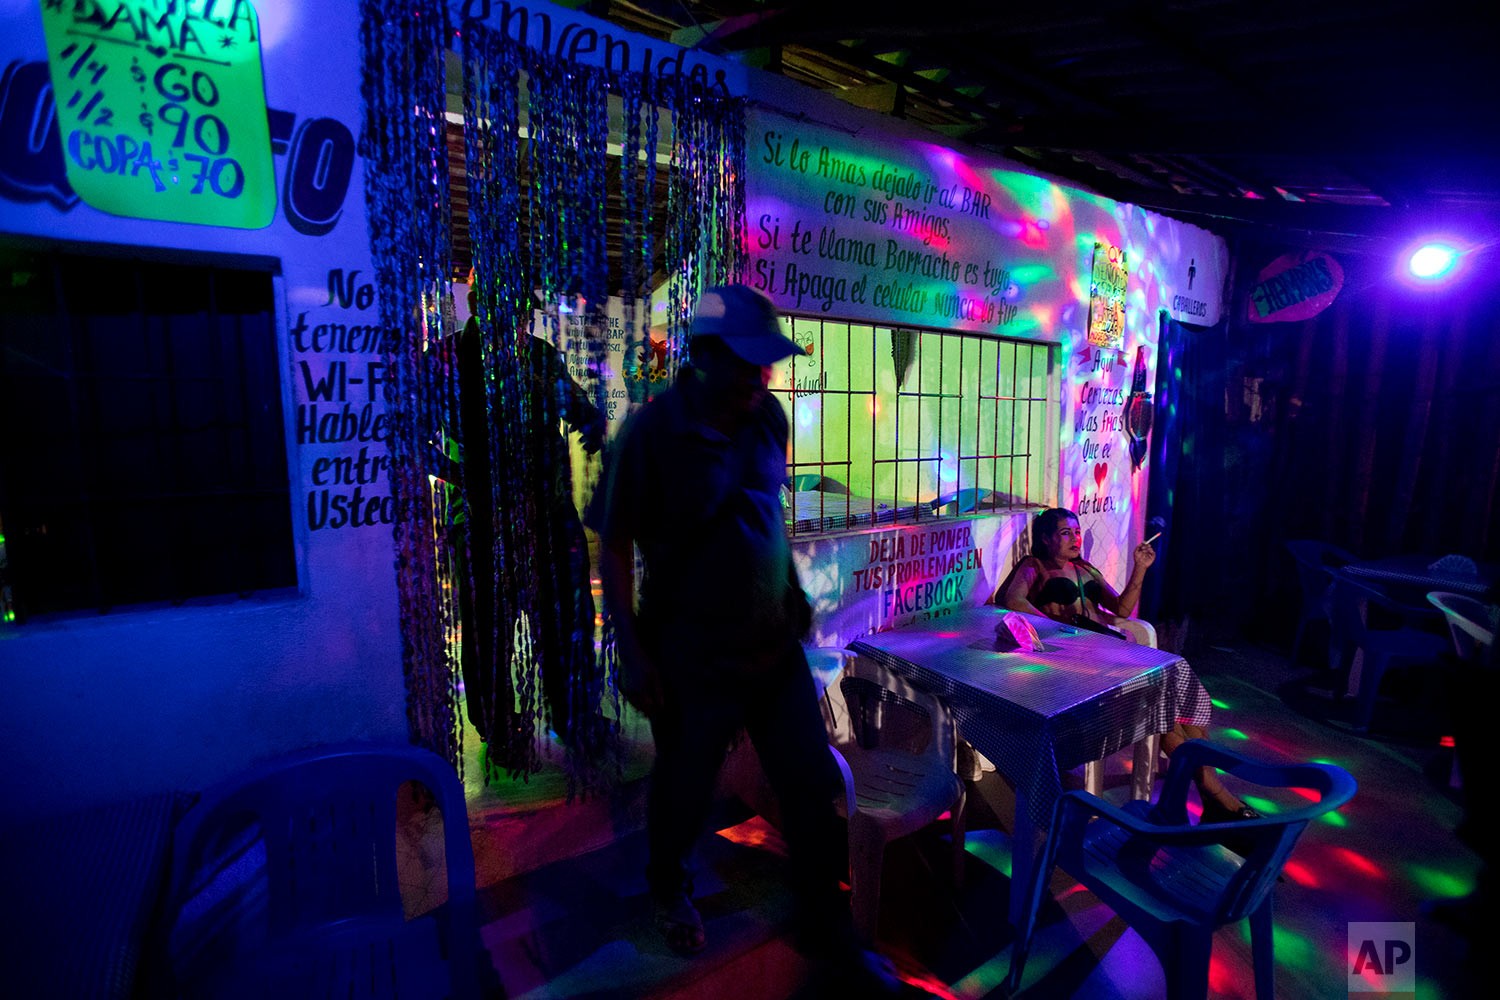 "In this photo published in March, ""community police"" vigilantes inspect a bar in Ayutla de los Libres, Guerrero state, Mexico, Feb. 4, 2018. For these citizen cops, being on duty can mean manning an impromptu road roadblock to search vehicles for contraband, monitoring bars for any nefarious activity or watching over rudimentary police stations with jail cells. (AP Photo/Rebecca Blackwell)"